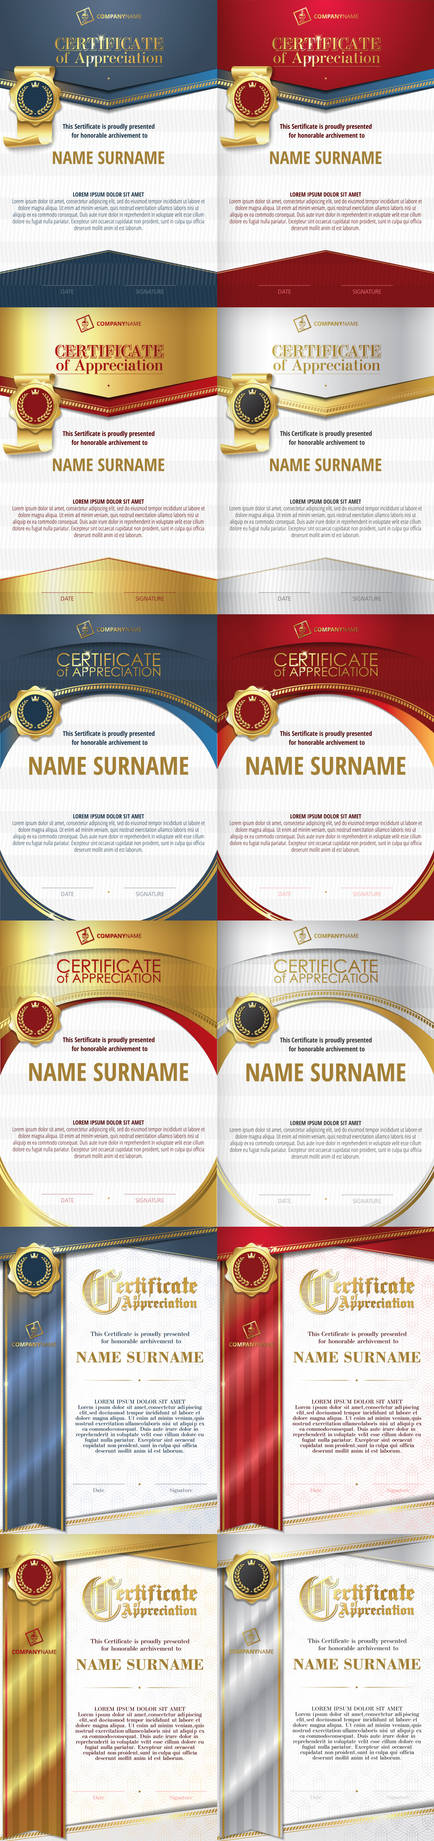 Templates of Certificate of Appreciation. Vector.